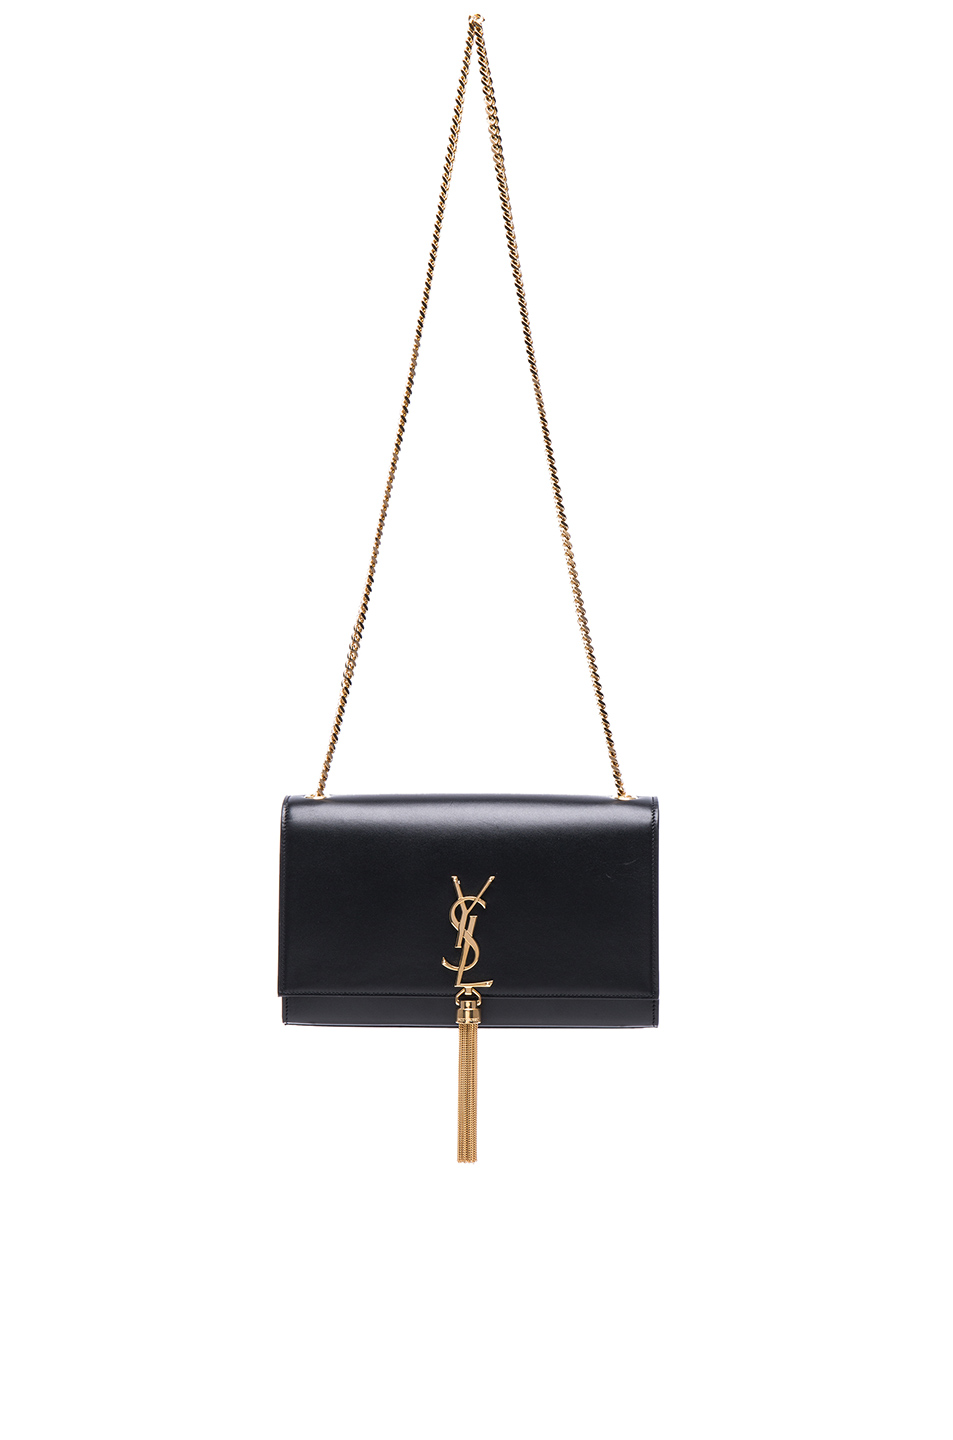 MEDIUM MONOGRAM KATE SHOULDER BAG